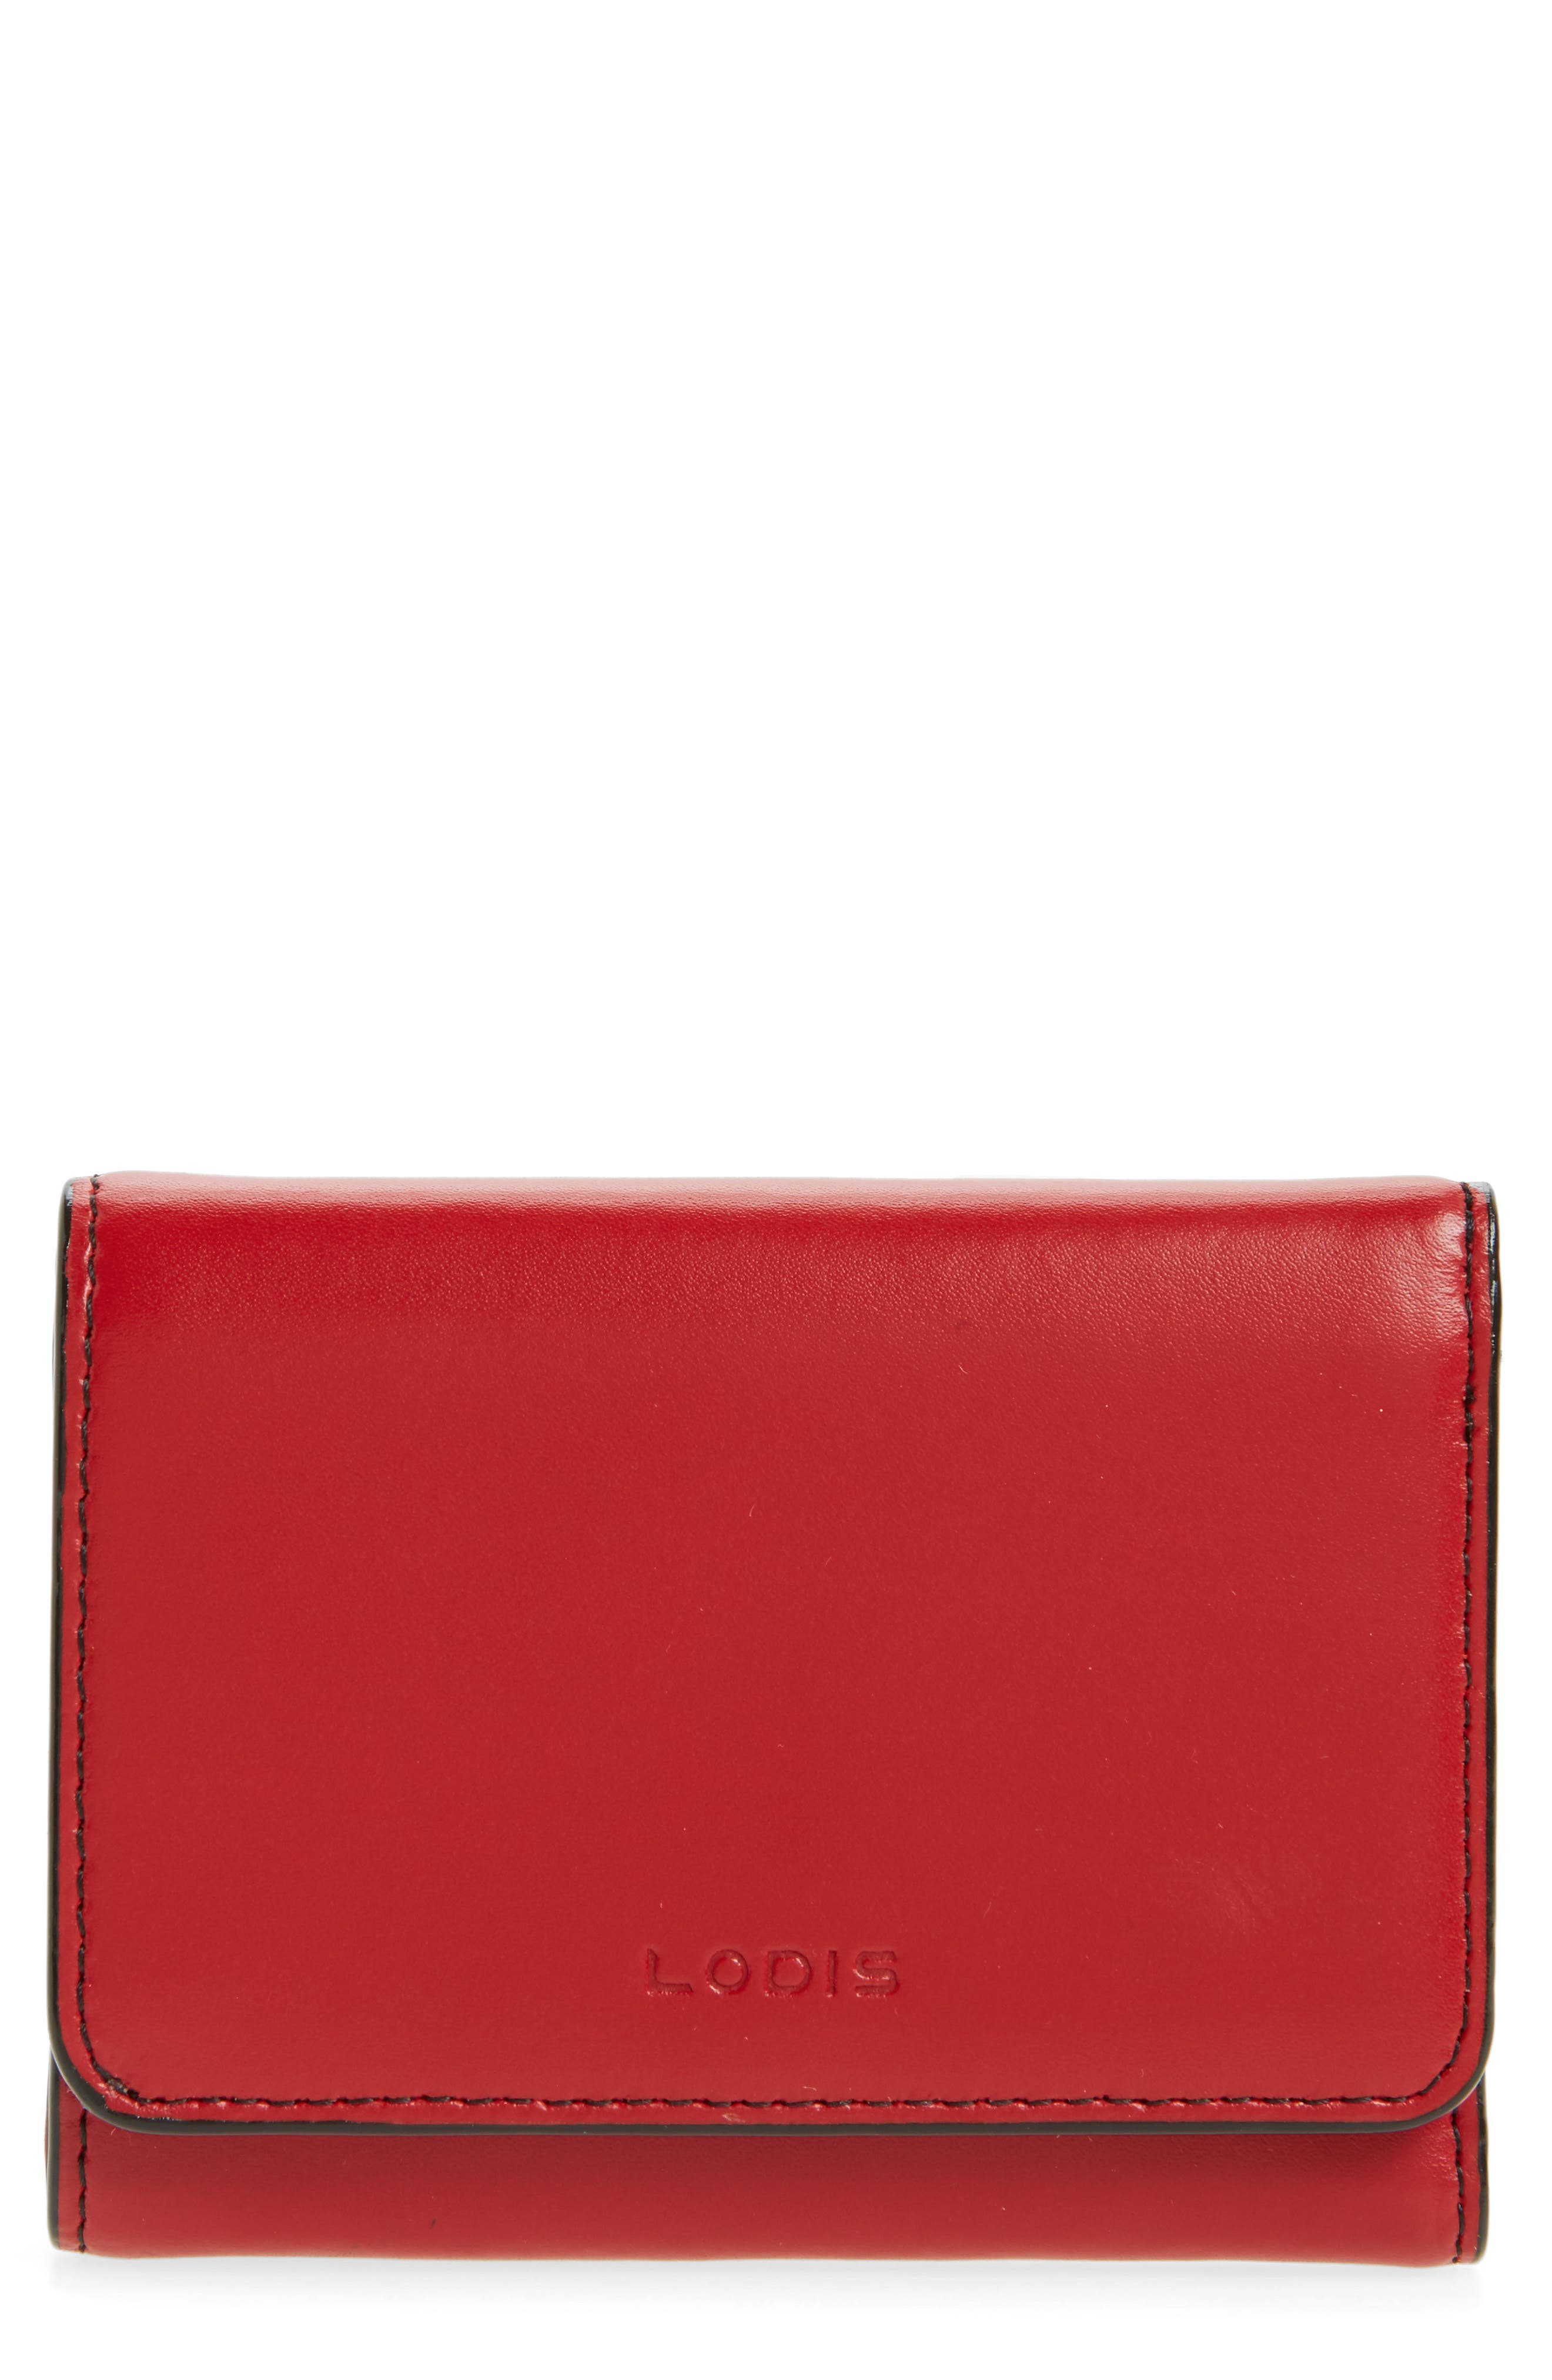 Mallory RFID Leather Wallet,                             Main thumbnail 1, color,                             600